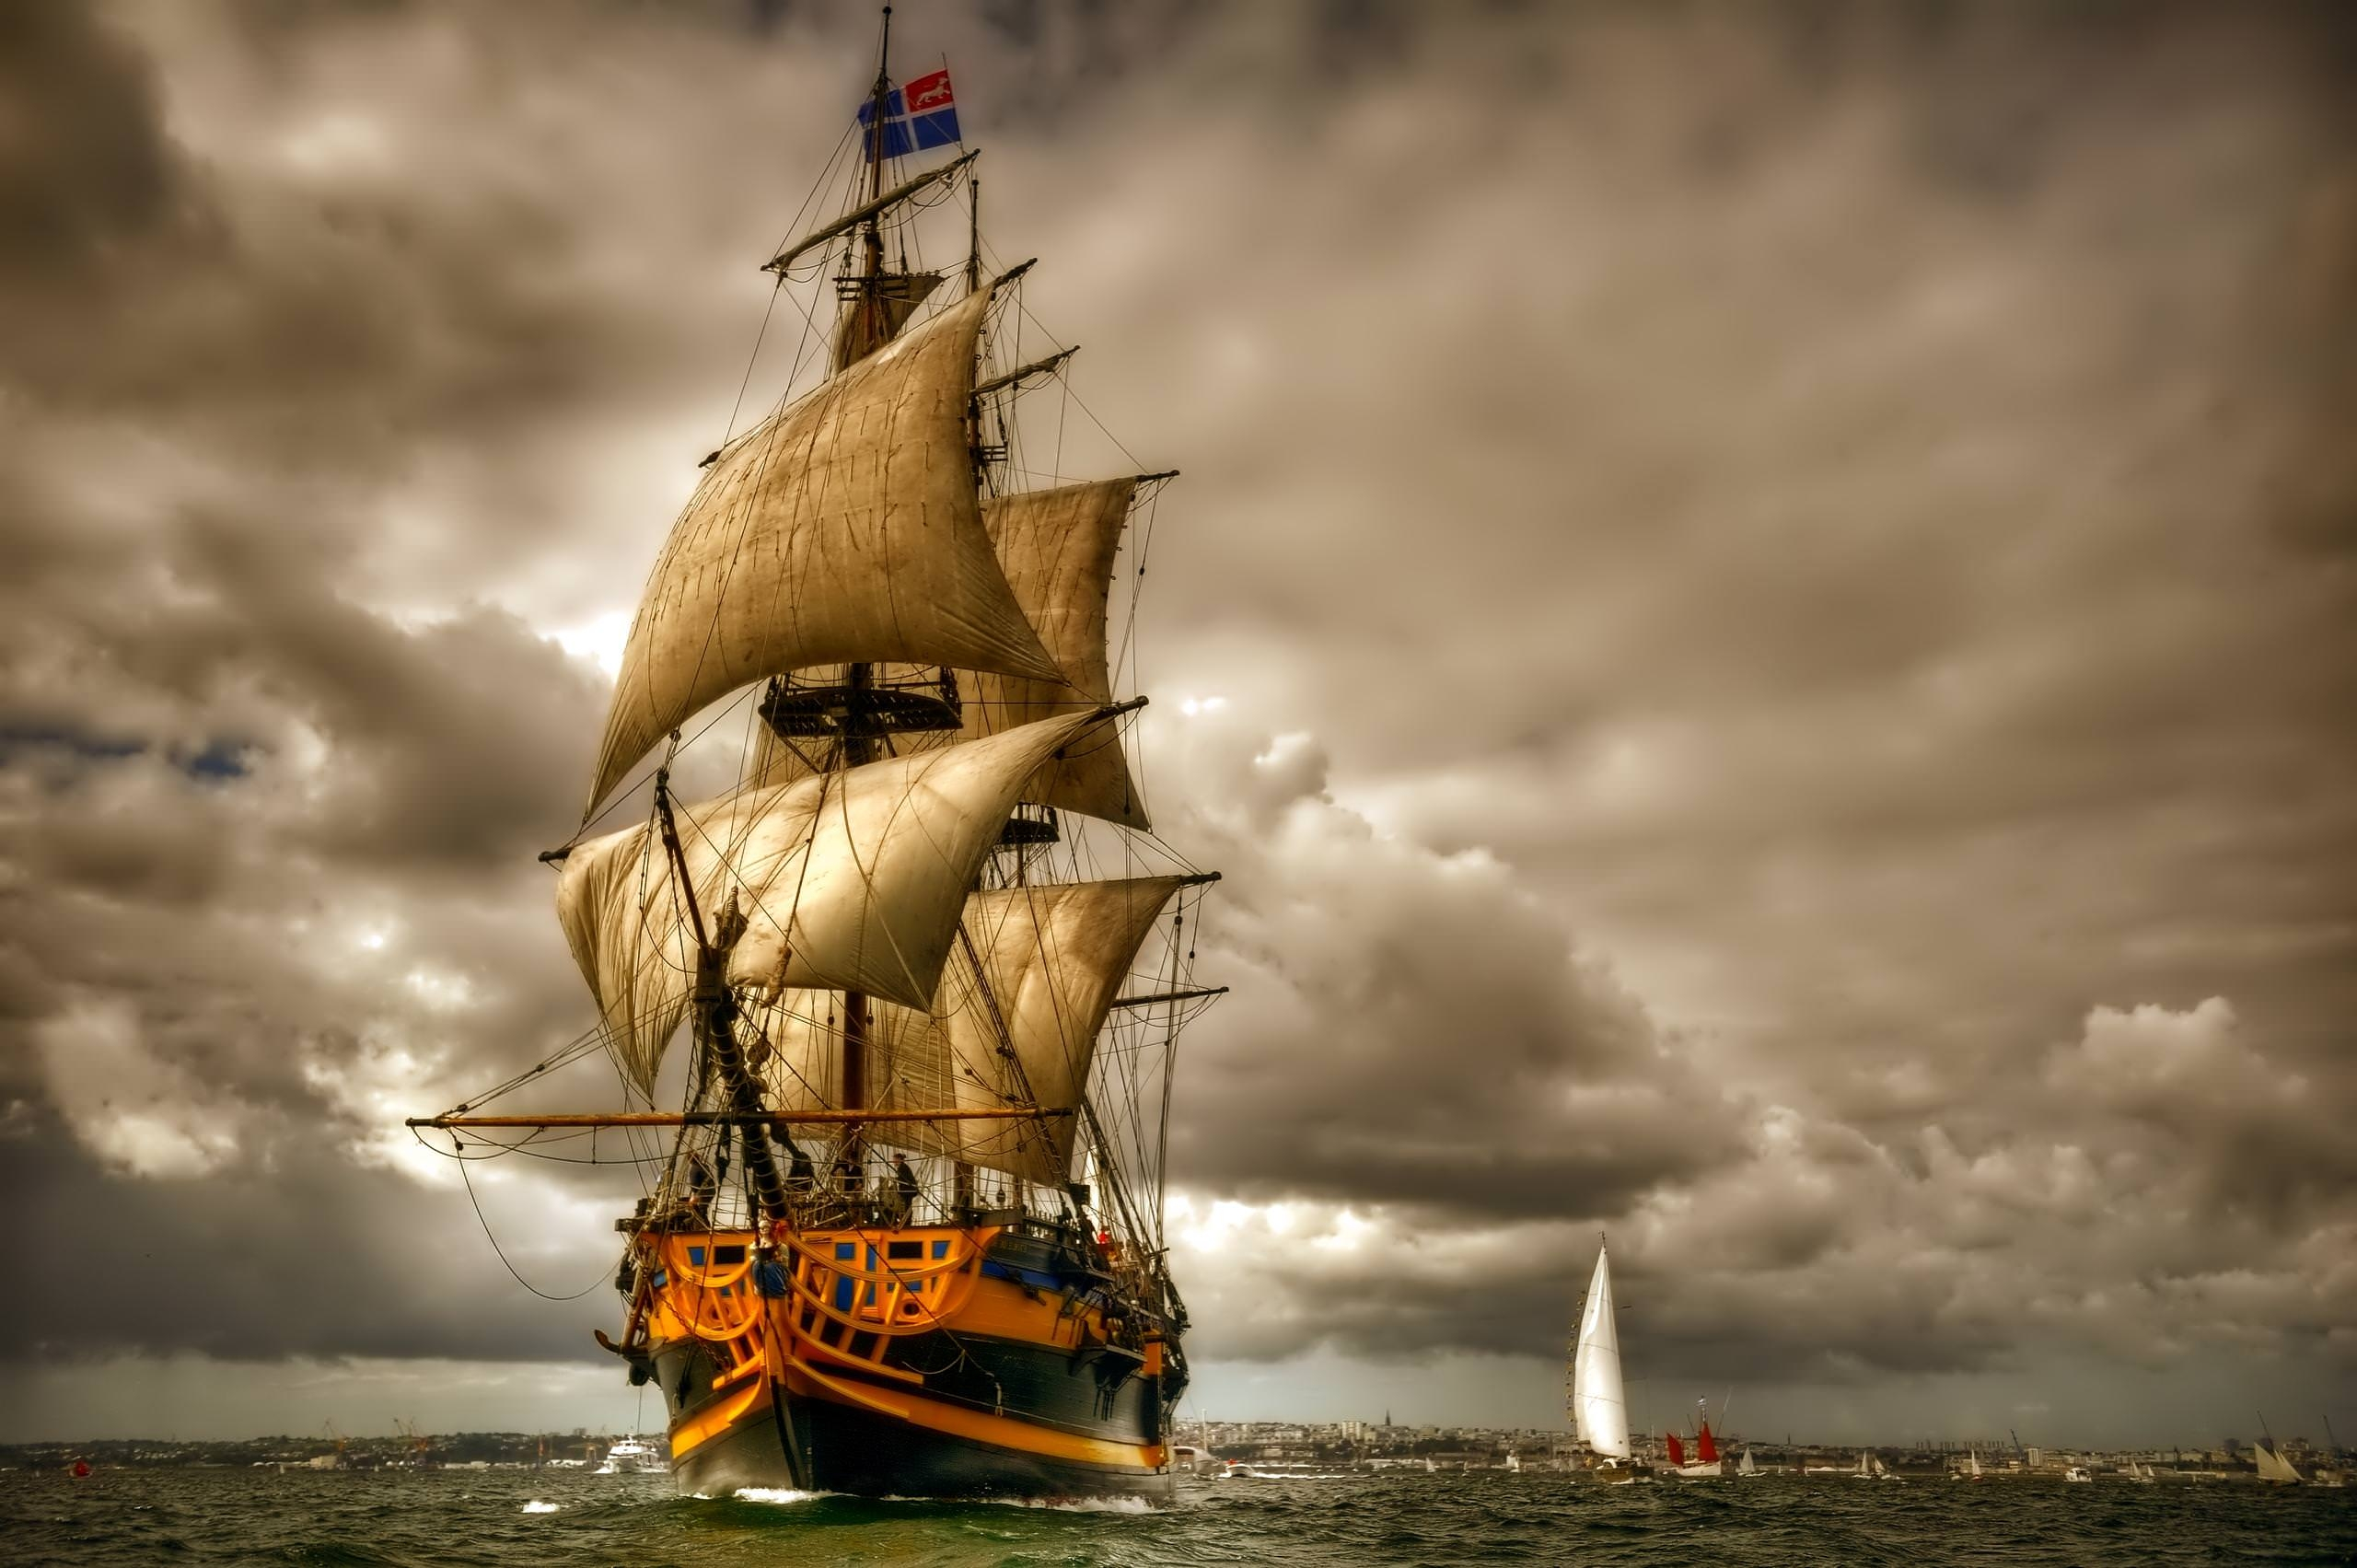 Sailboats Wallpaper For Download